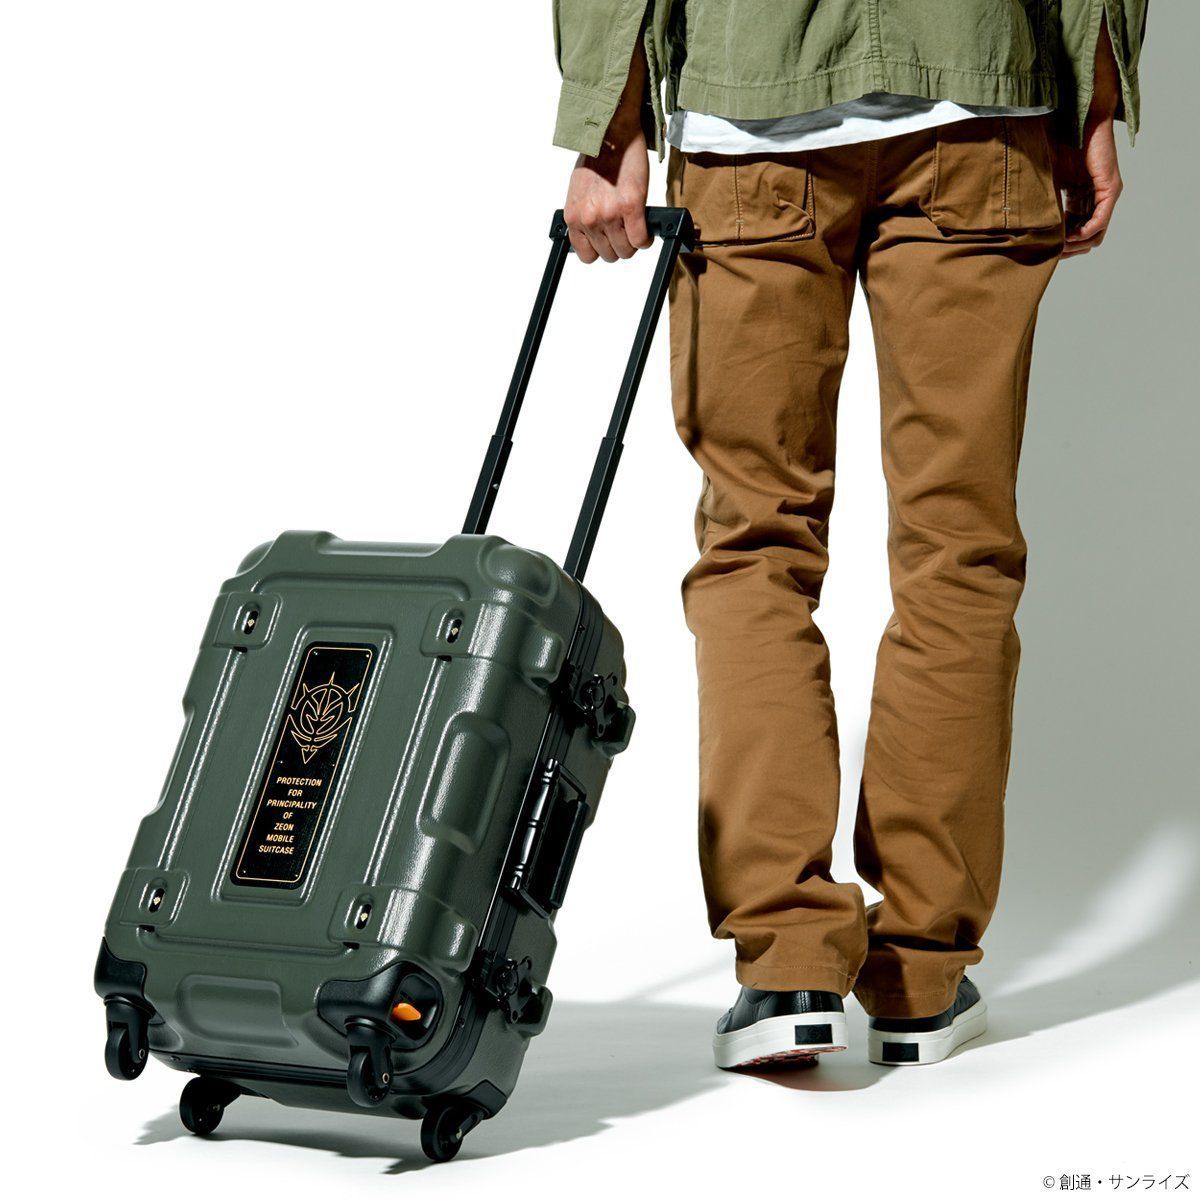 STRICT-G×PROTEX CR-3300 Luggage - Mobile Suit Gundam Principality of Zeon Version [Oct 2021 Delivery]